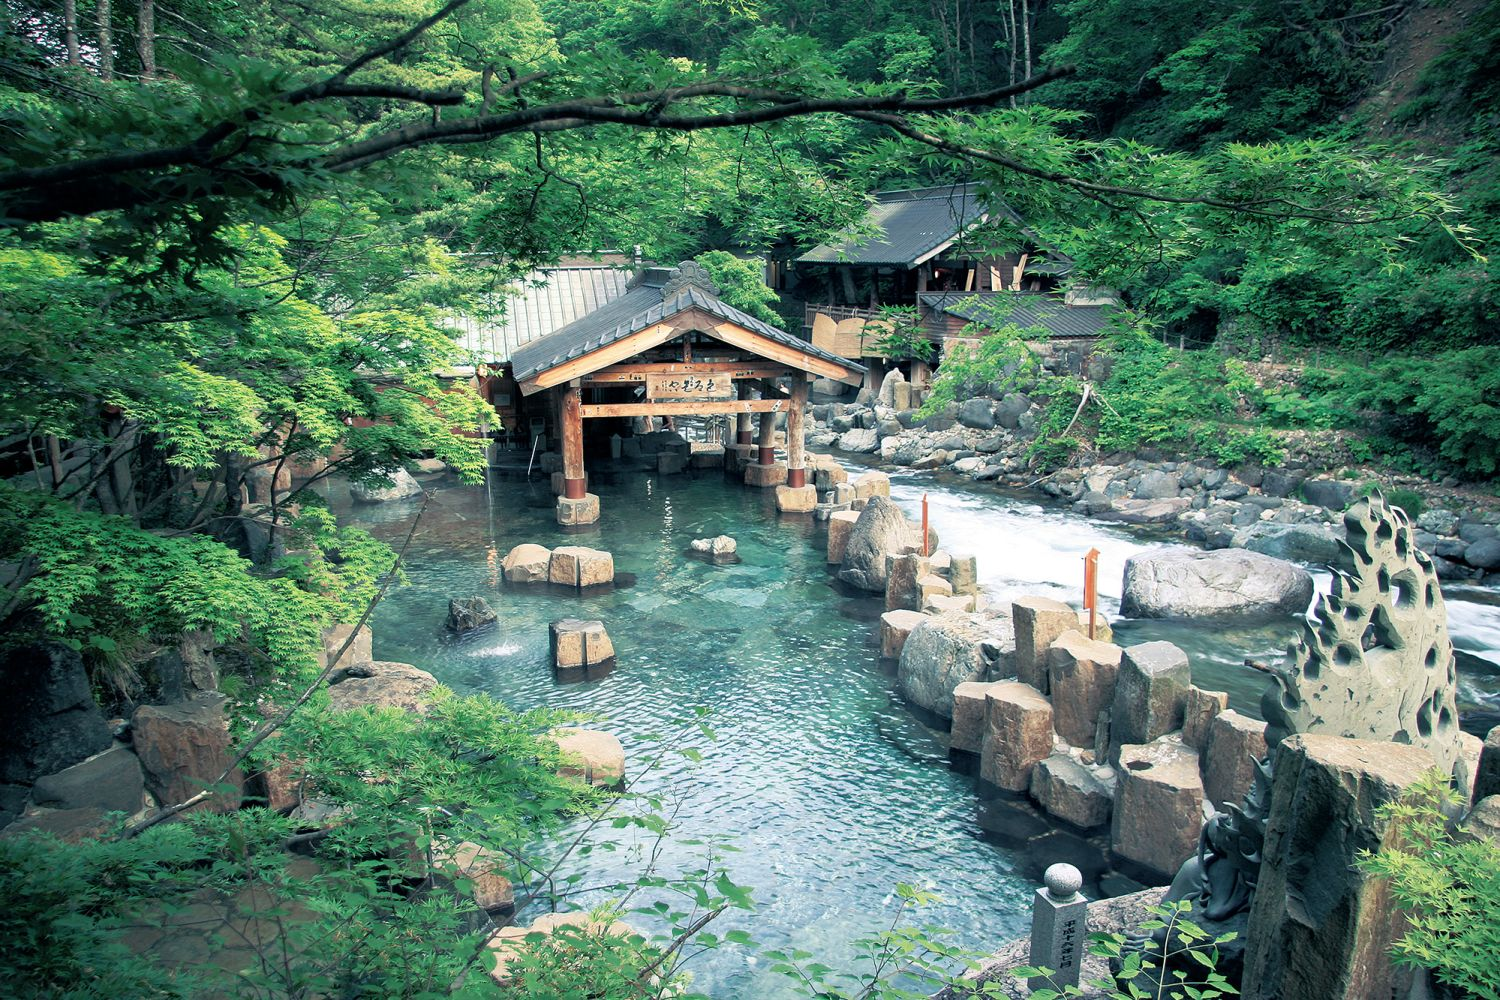 Japan's largest outdoor onsen